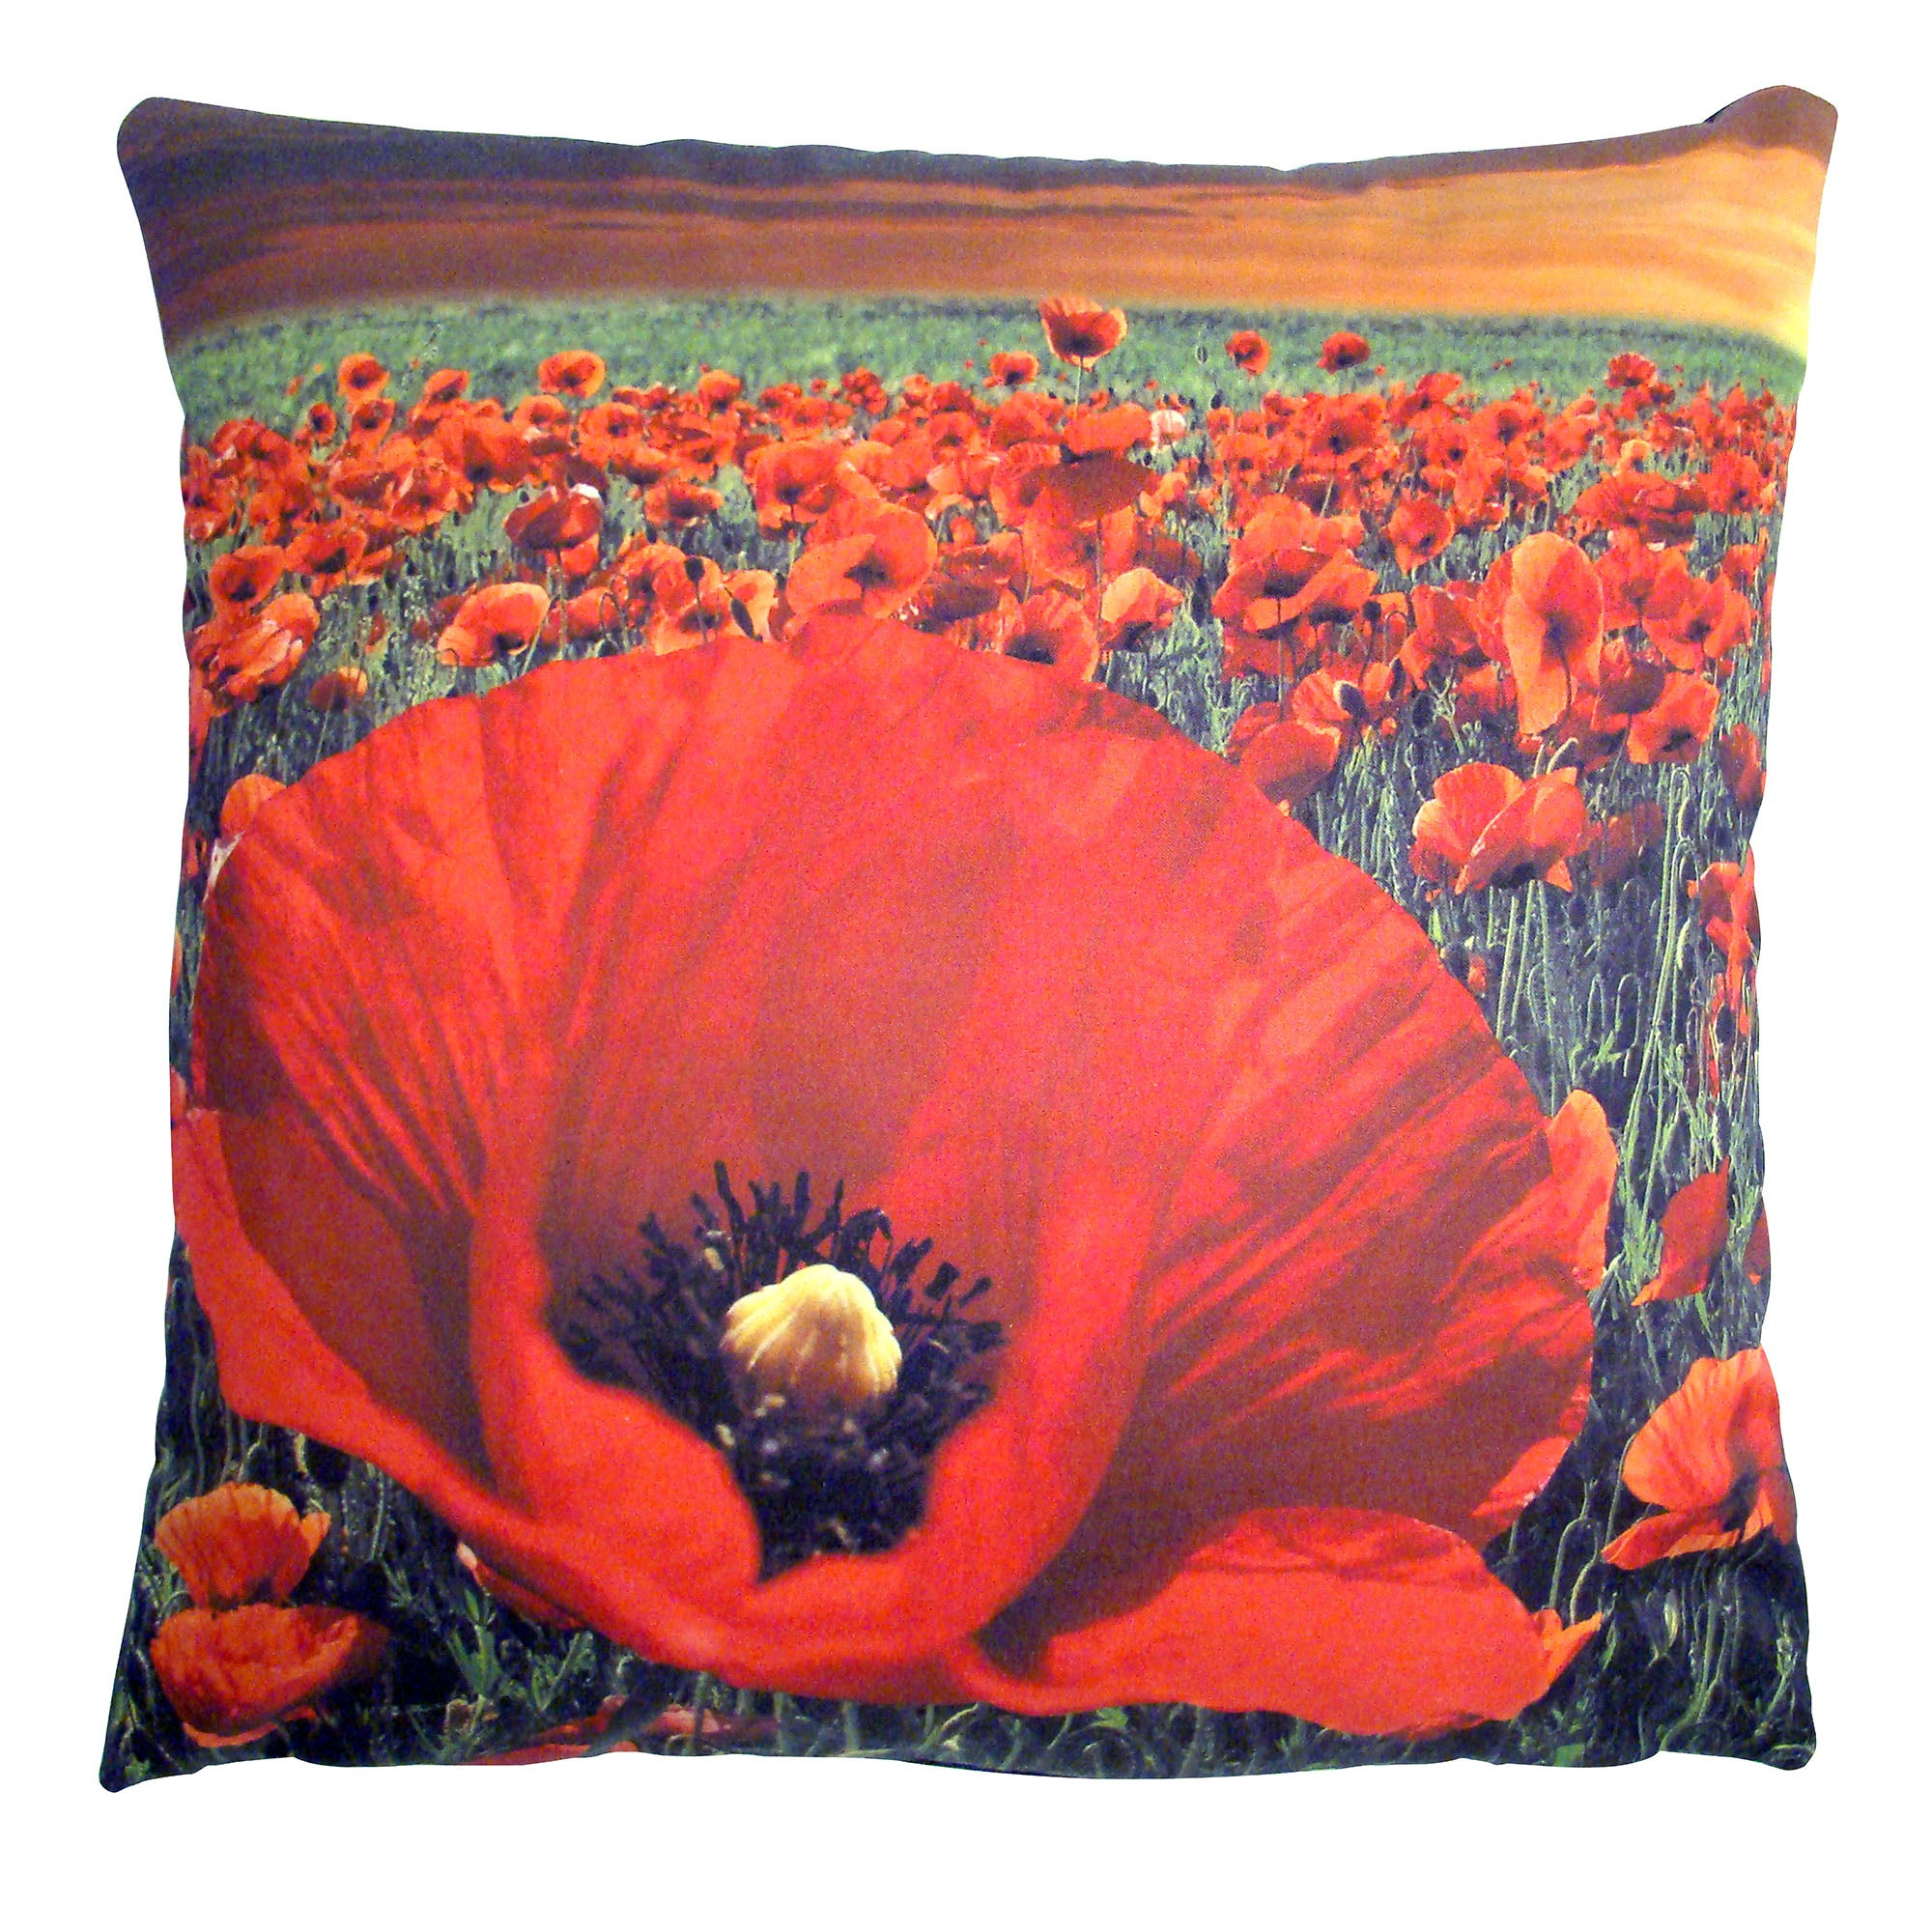 Flanders Cushion Cover